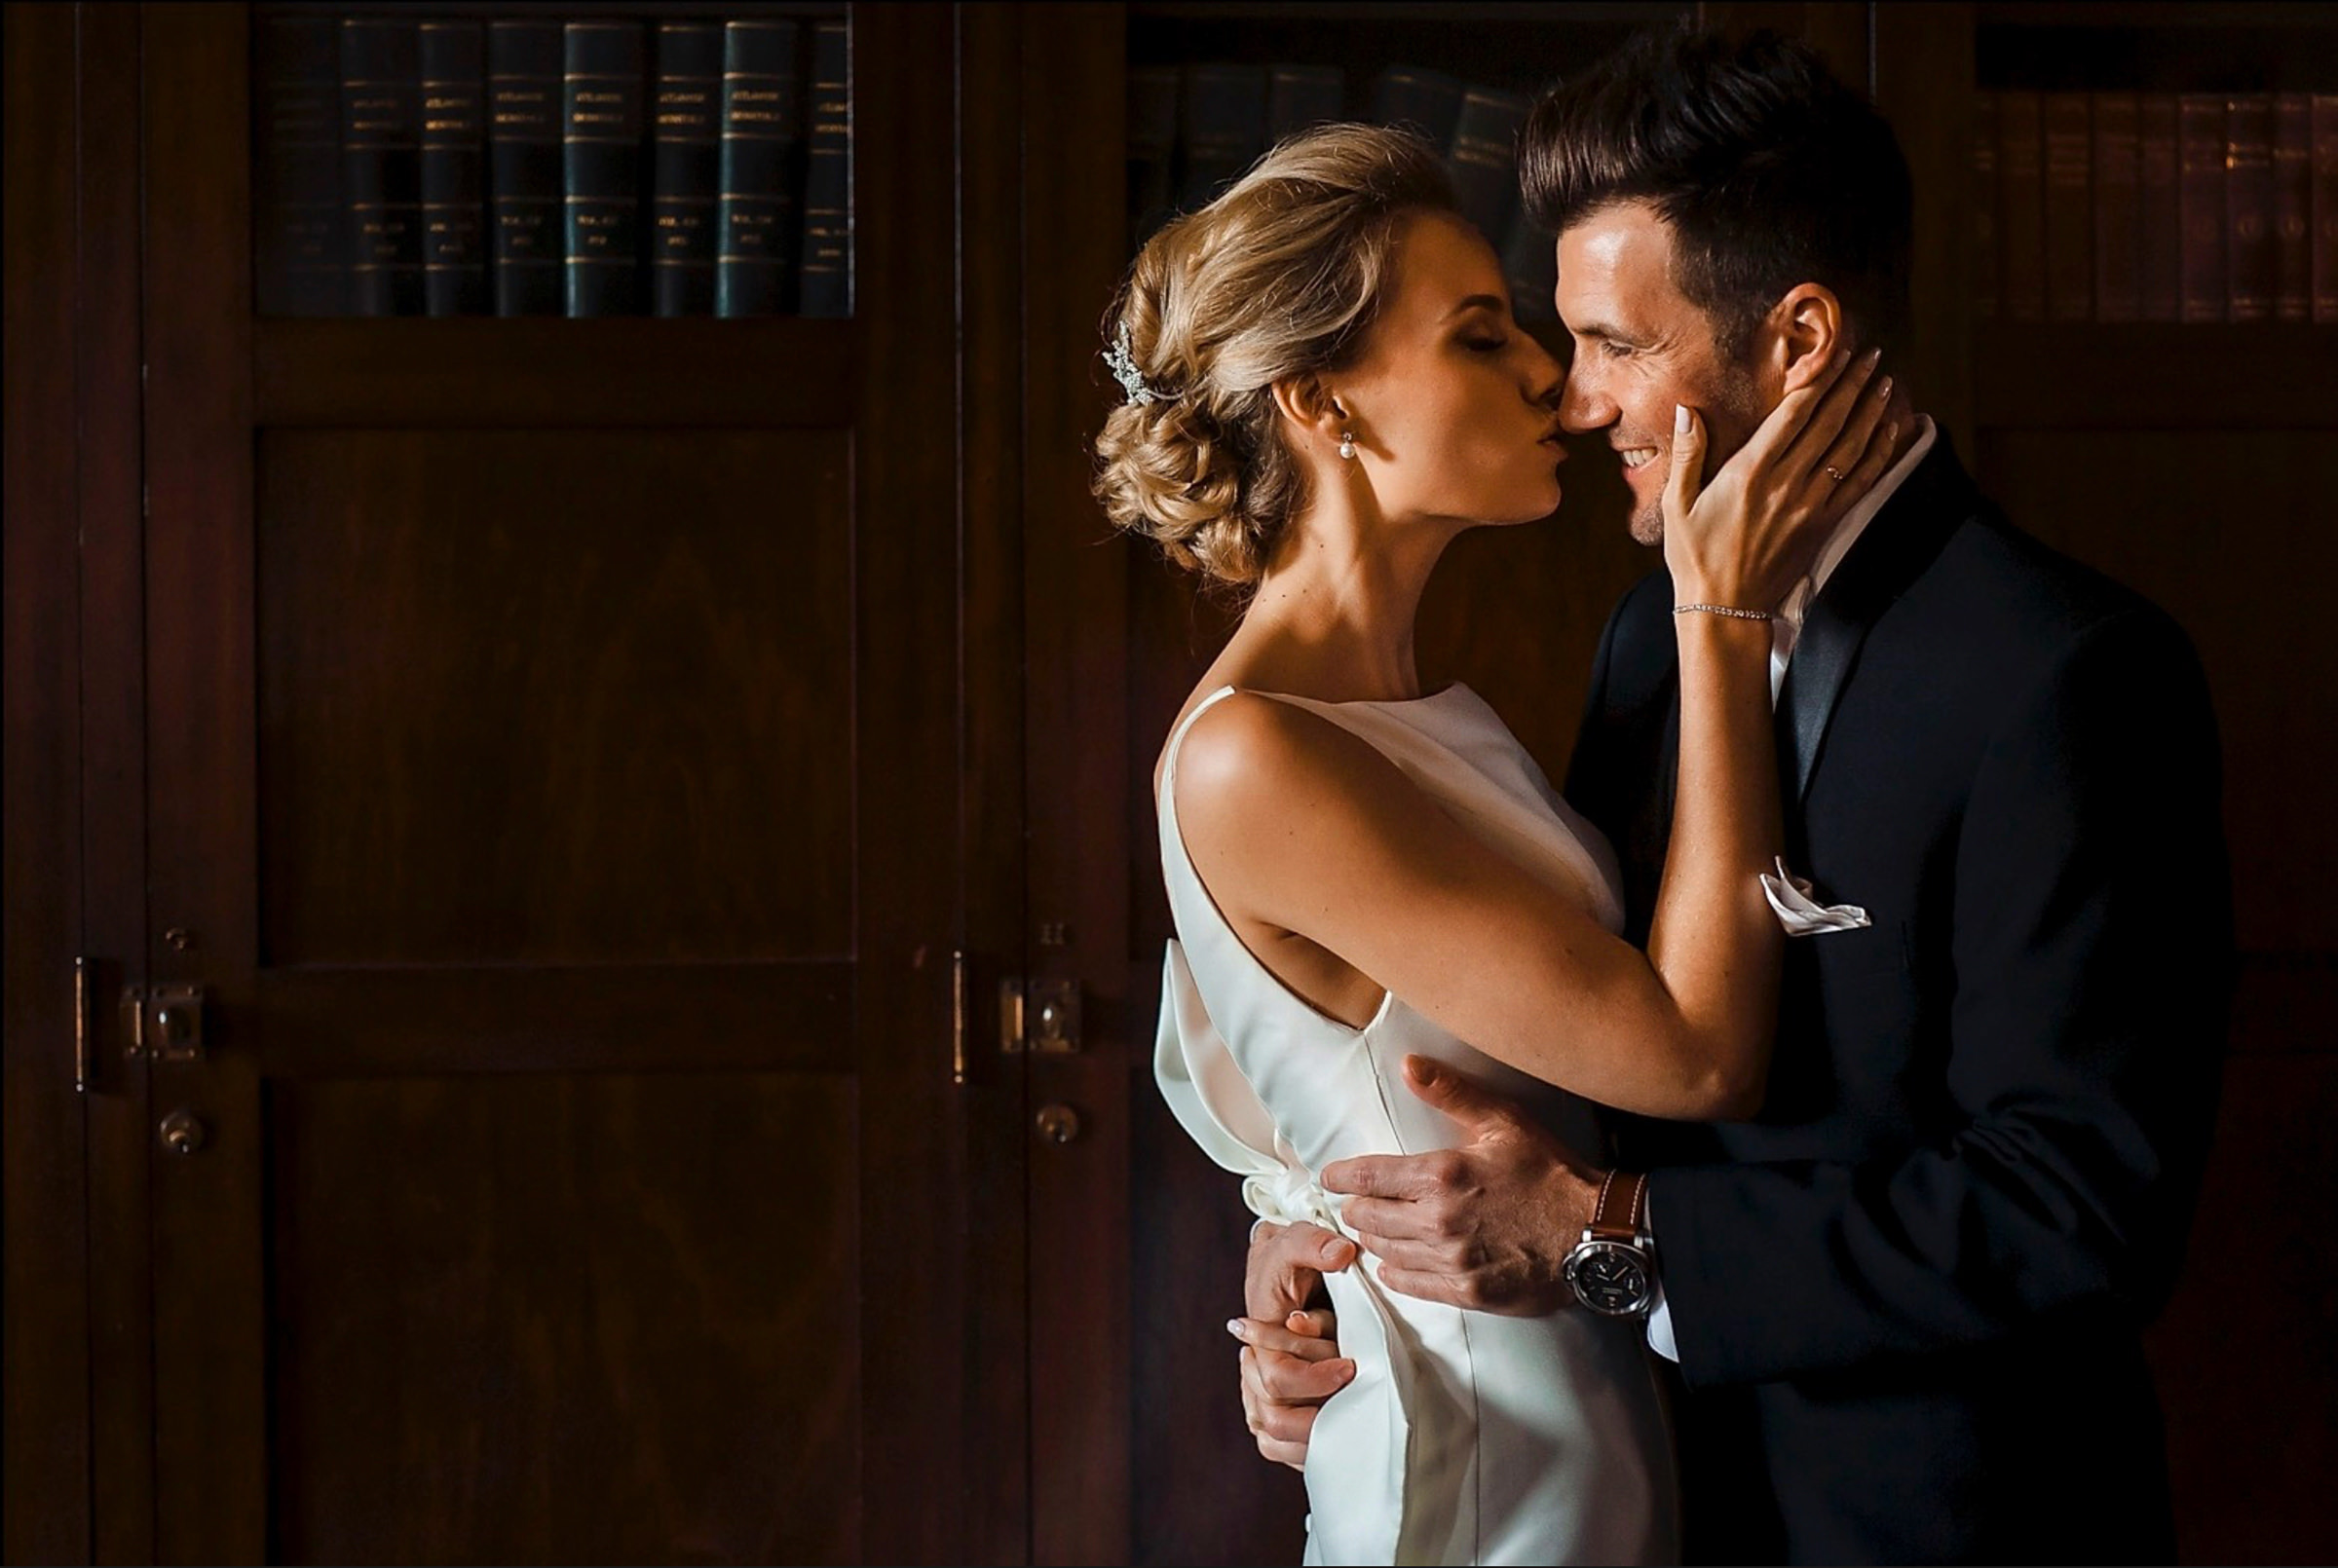 couple-kiss-against-library-wood-paneling-m-hart-los-angeles-photographer